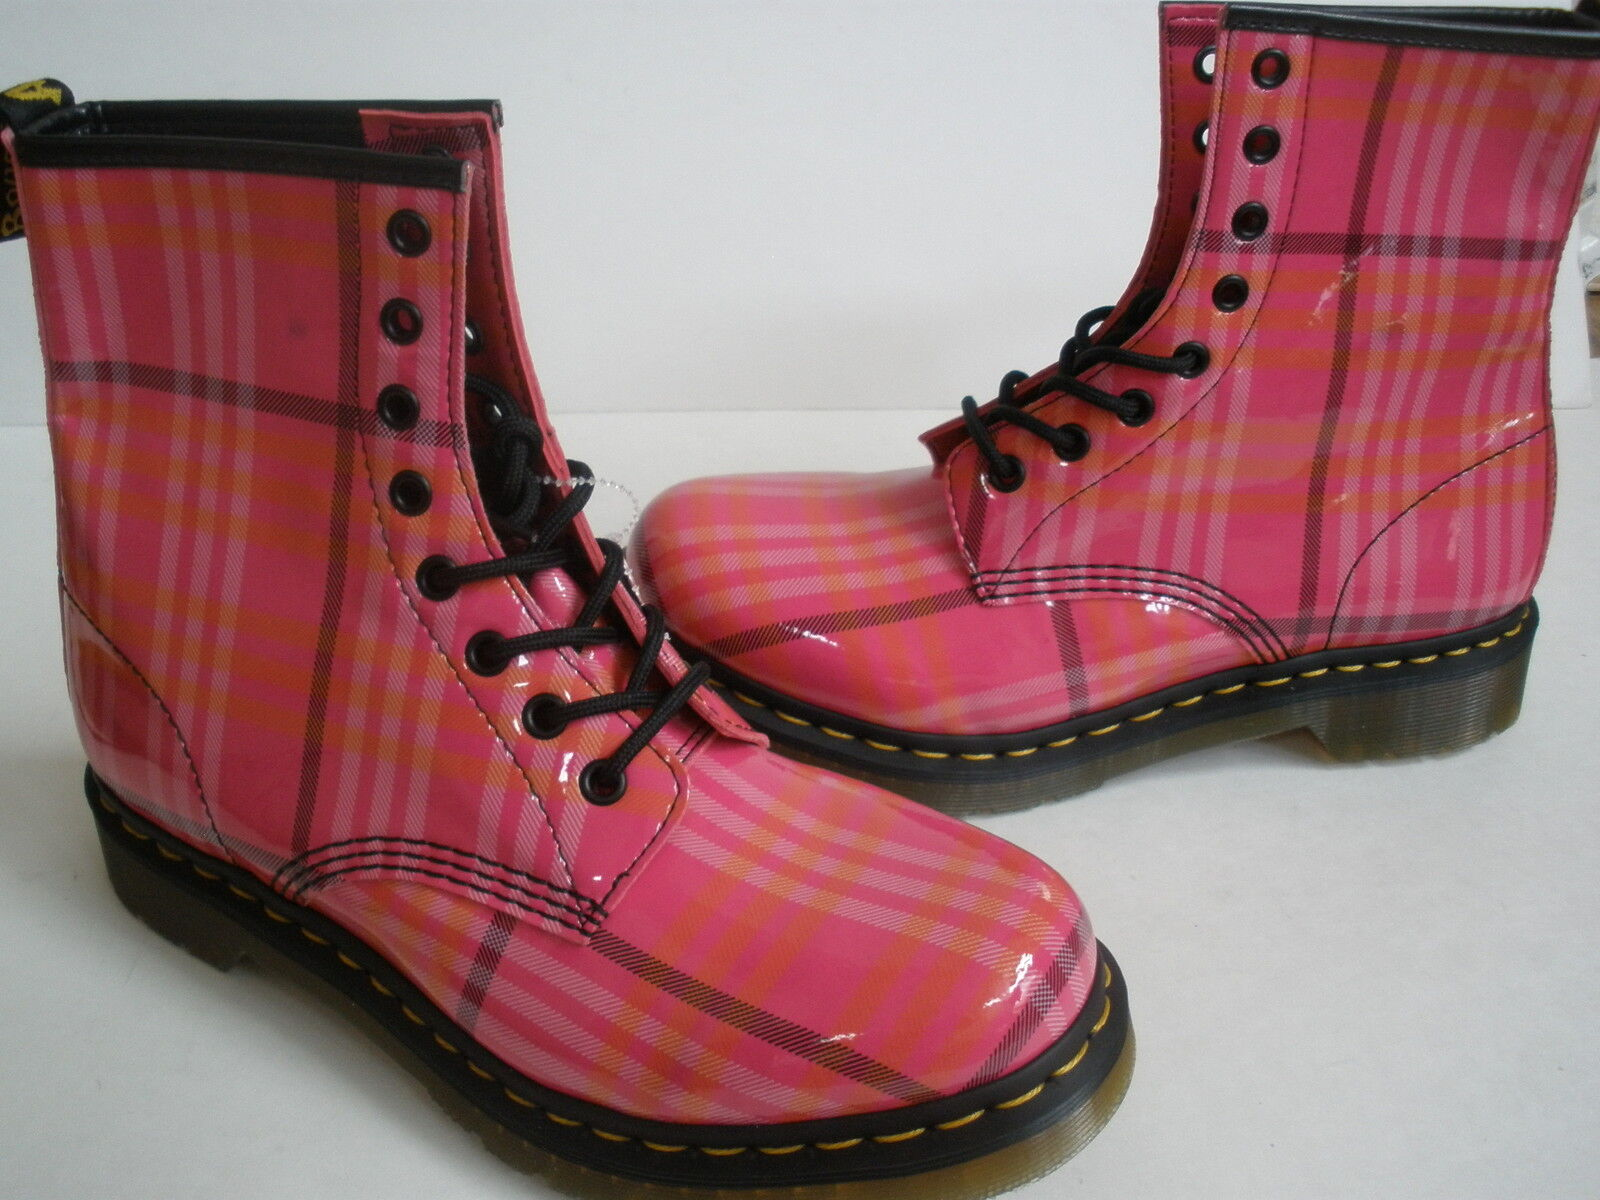 DR.MARTENS SYNTHETIC LEATHER BOOTS US 10 NEW